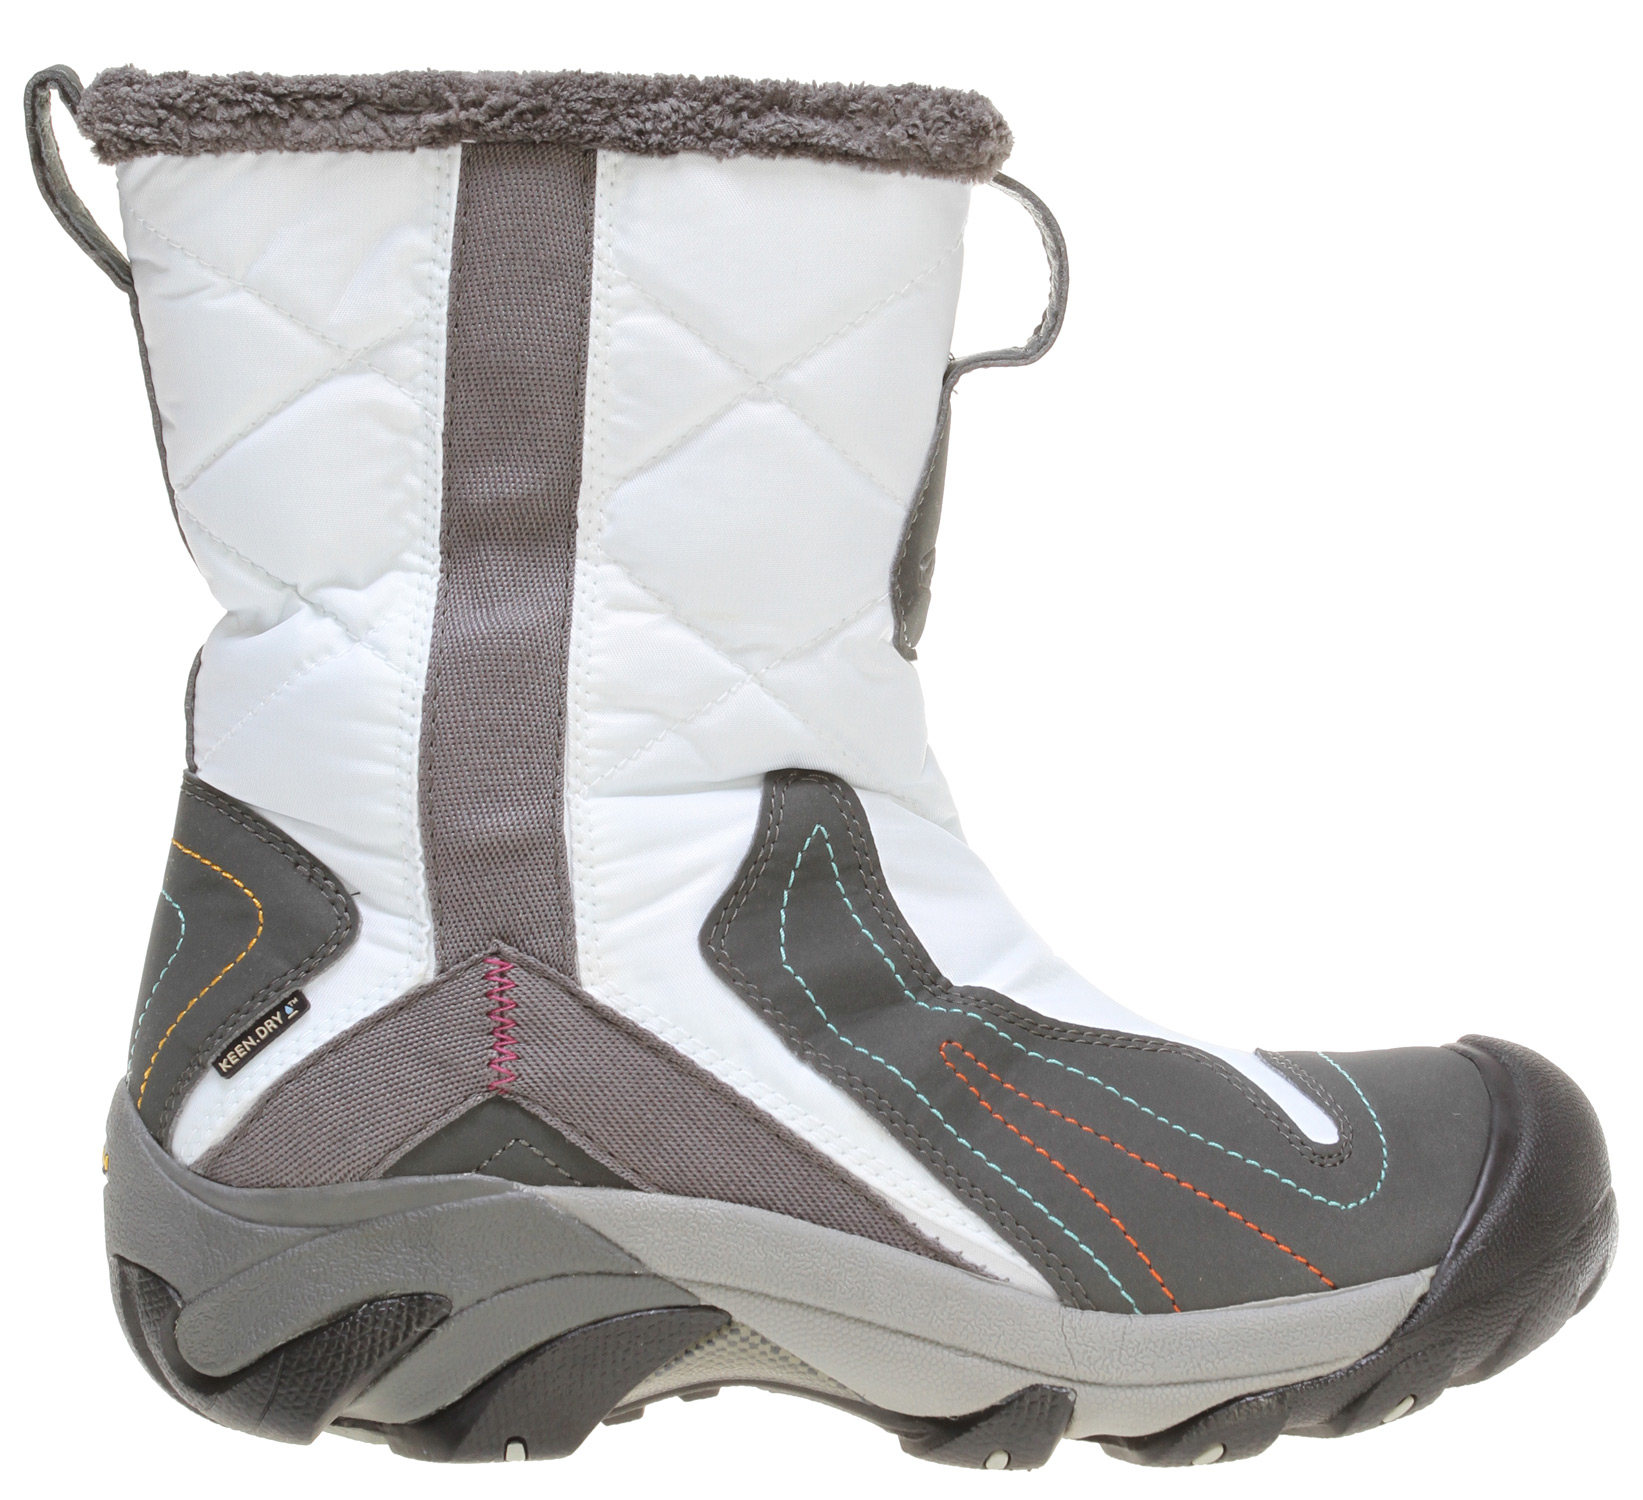 "Camp and Hike The Betty Boot from KEEN fuses performance with bright snow-bunny style. Using a women's specific design, the Betty Boot features KEEN.WARM insulation and KEEN.DRY waterproofing for maximum cold-weather protection with a feminine twist. Please note - the color way called Slate Black is actually a Brown.Key Features of the Keen Betty Boots: Weight: 19.21 oz / 546.909 grams Fit Tip: We find this style runs about a 1/2 size small. Lining: KEEN.DRY Waterproof membrane and microfleece Upper: Synthetic Rubber: Non-marking rubber outsole Collar Height: 10"" Calf Circumference: 12.5"" Activities: Hiking, City Streets, Snow Type: Boots: Cold - insulated, Wet - waterproof 200g KEEN.Warm insulation Abrasion resistant and breathable textile mesh upper Dual-density compression molded EVA midsole KEEN.DRY waterproof breathable membrane Microfleece lining Non-marking rubber outsole Patented toe protection S3 Heel support structure Thermal heat shield footbed Torsion stability ESS shank Waterproof medial zipper for easy on/off Women's specific design S3: Shock, suspension, stability - otherwise known as S3 - is engineered to support the foot on impact, dissipate shock and reduce your odds of twisting an ankle. KEEN.DRY: A proprietary waterproof, breathable membrane that lets vapor out without letting water in. KEEN.WARM: A lightweight insulation that keeps you warm. Who knew charcoal bamboo could create something that keeps your feet warm? But it makes KEEN.WARM a lightweight, anti microbial insulation that provides warmth where you need it most. THERMAL HEAT SHIELD FOOTBED: On the outside, wooly softness; in the middle, support cushioning; and inside, a thermal foil barrier to harness radiant heat. Keeps the cold out and the heat in. - $83.95"